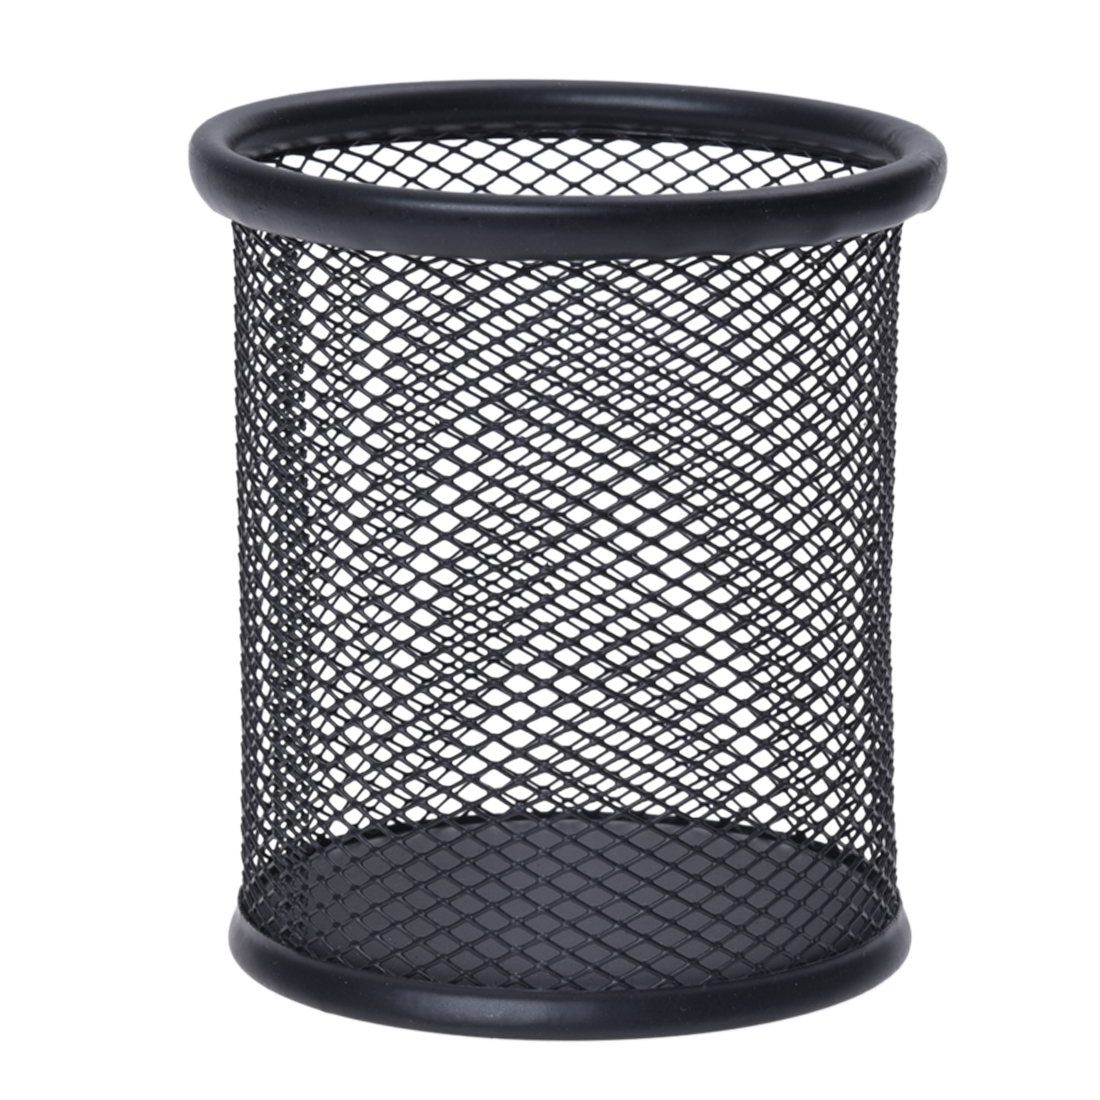 Steel Mesh Pencil Cup Storage Box Metal Desk Pen Pencil Organiser Cup Holder Office School Supplies